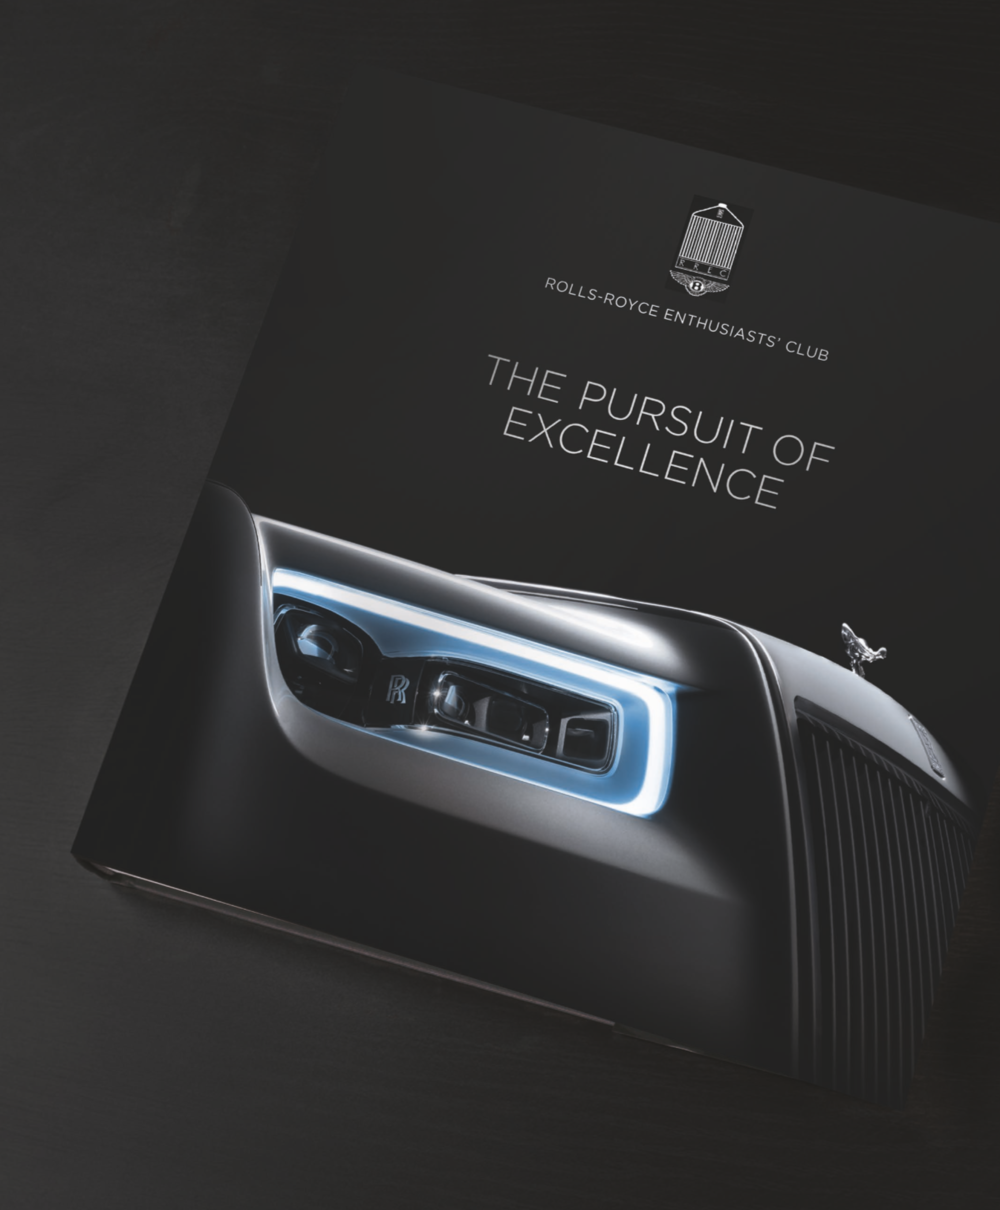 Rolls Royce Club Publication - The Pursuit of Excellence